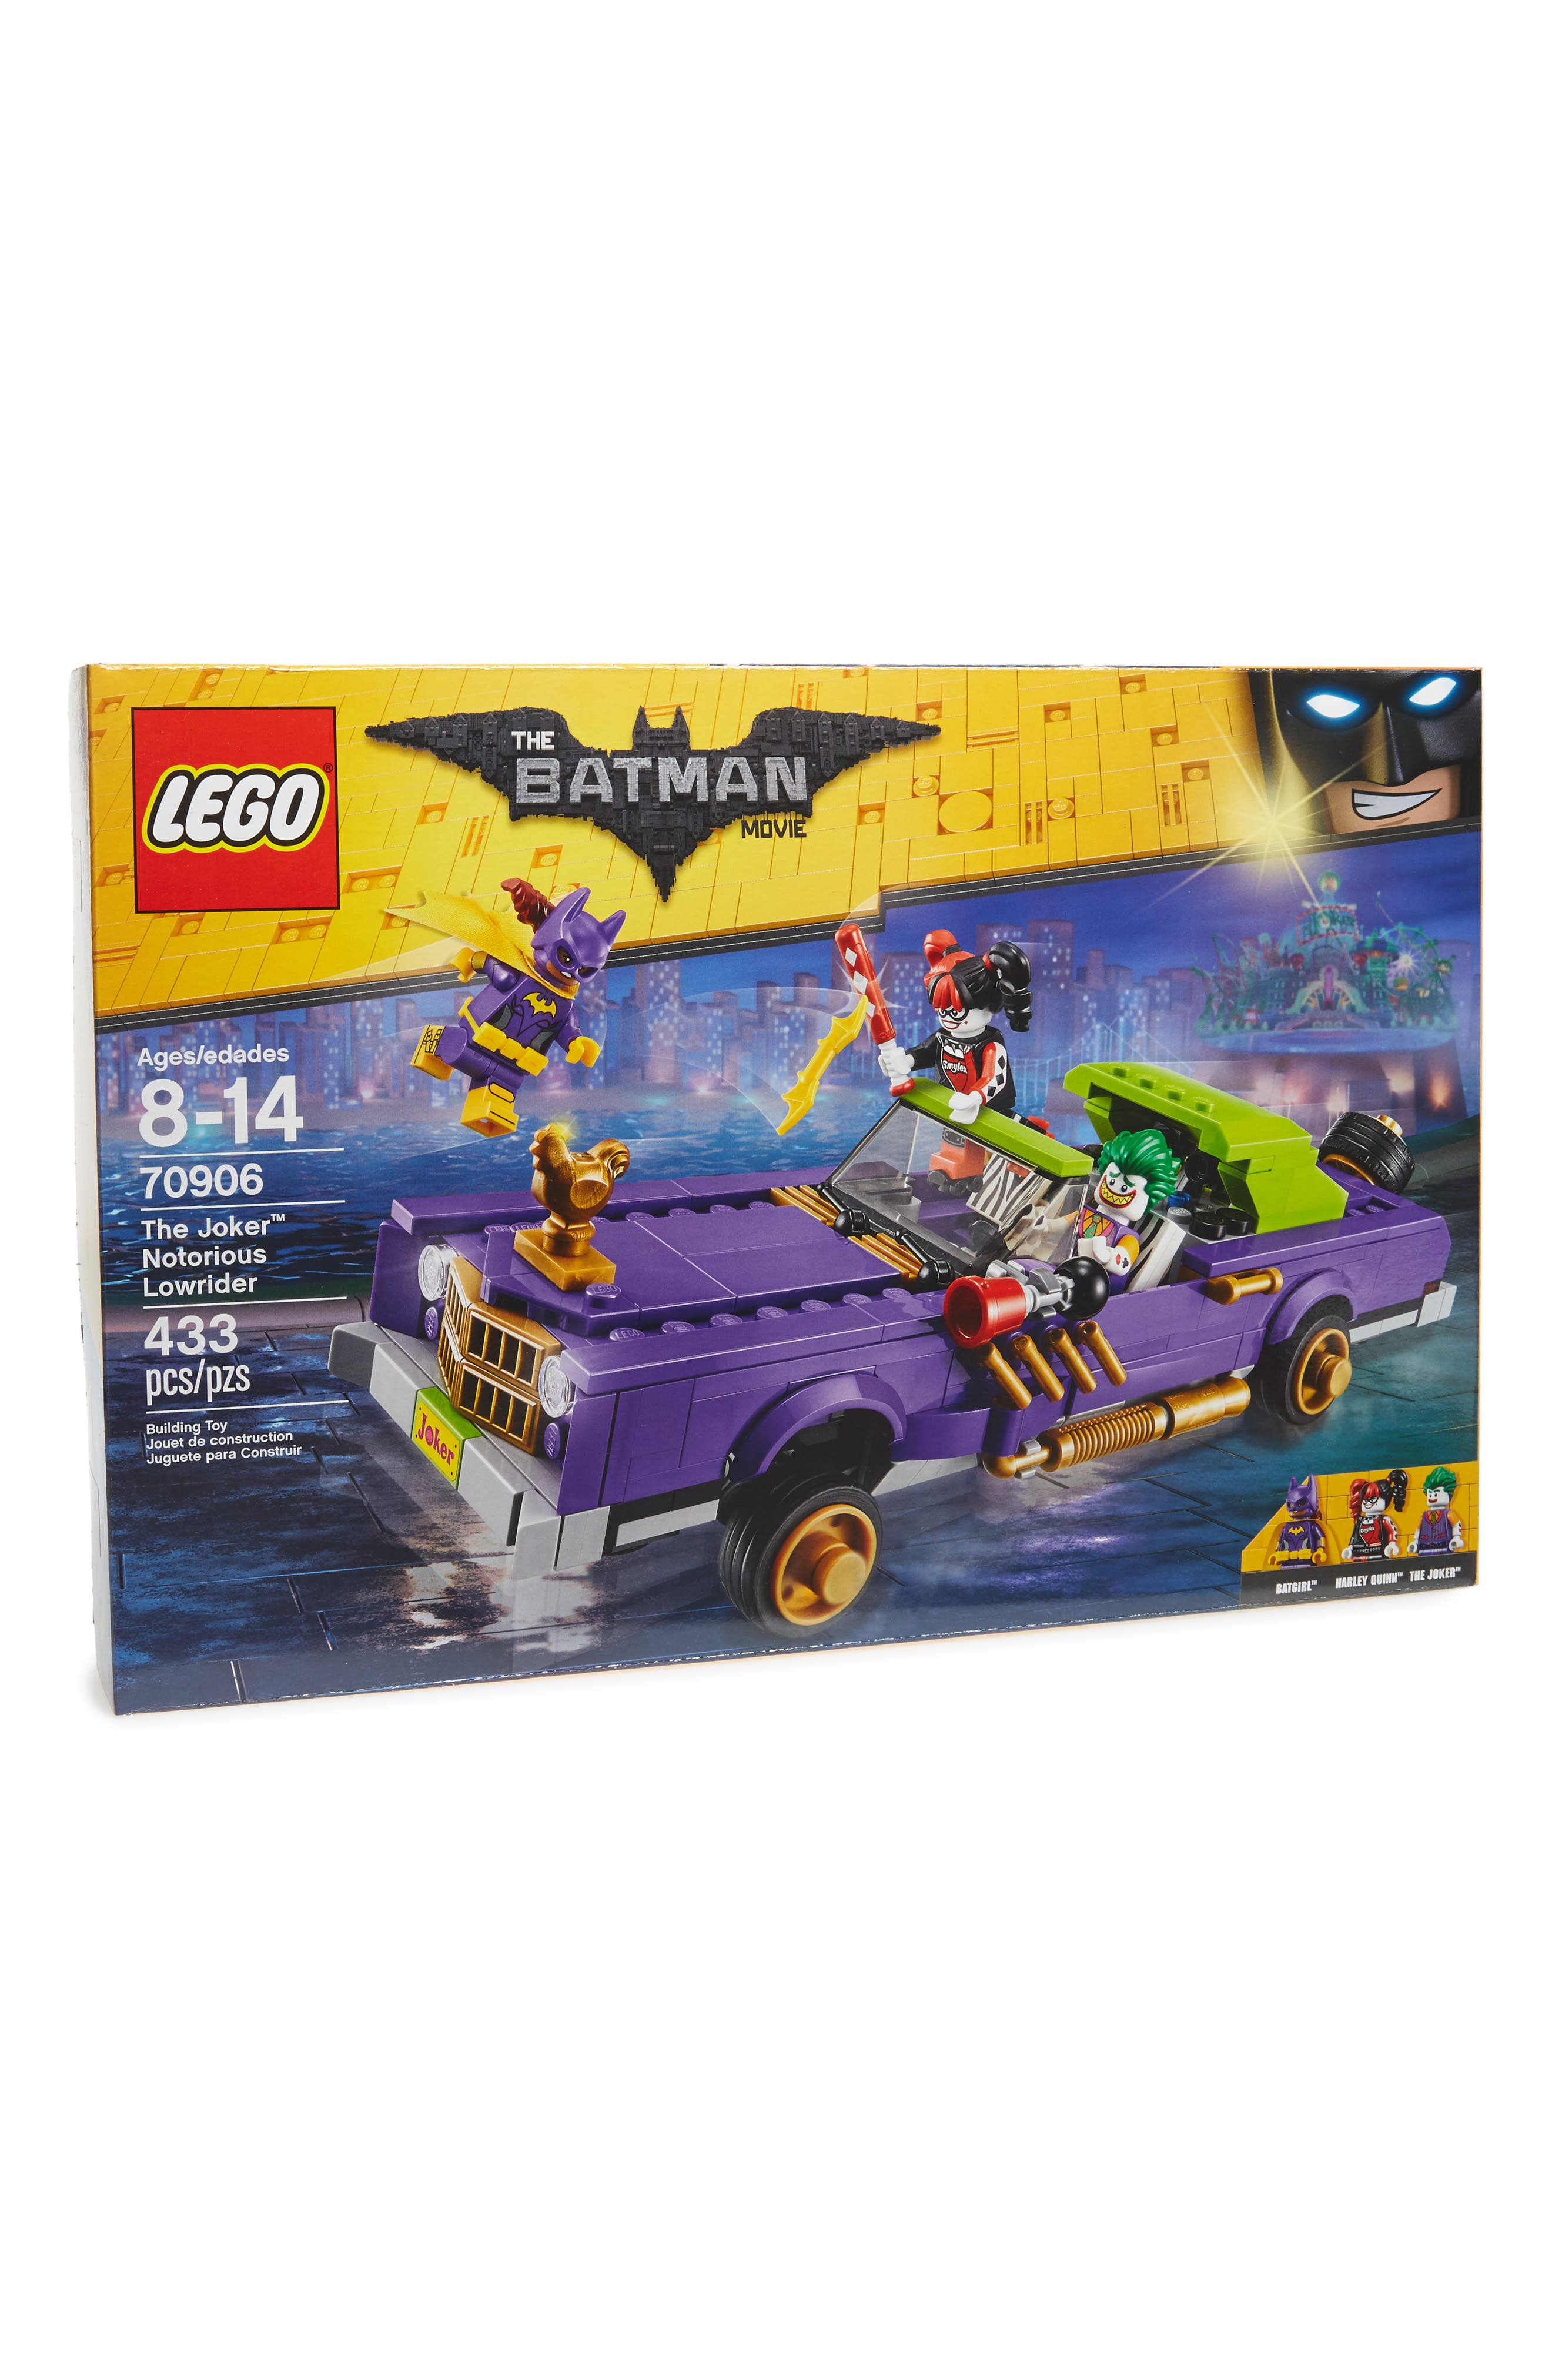 Alternate Image 1 Selected - LEGO® The Batman Movie™ The Joker™ Notorious Lowrider – 70906